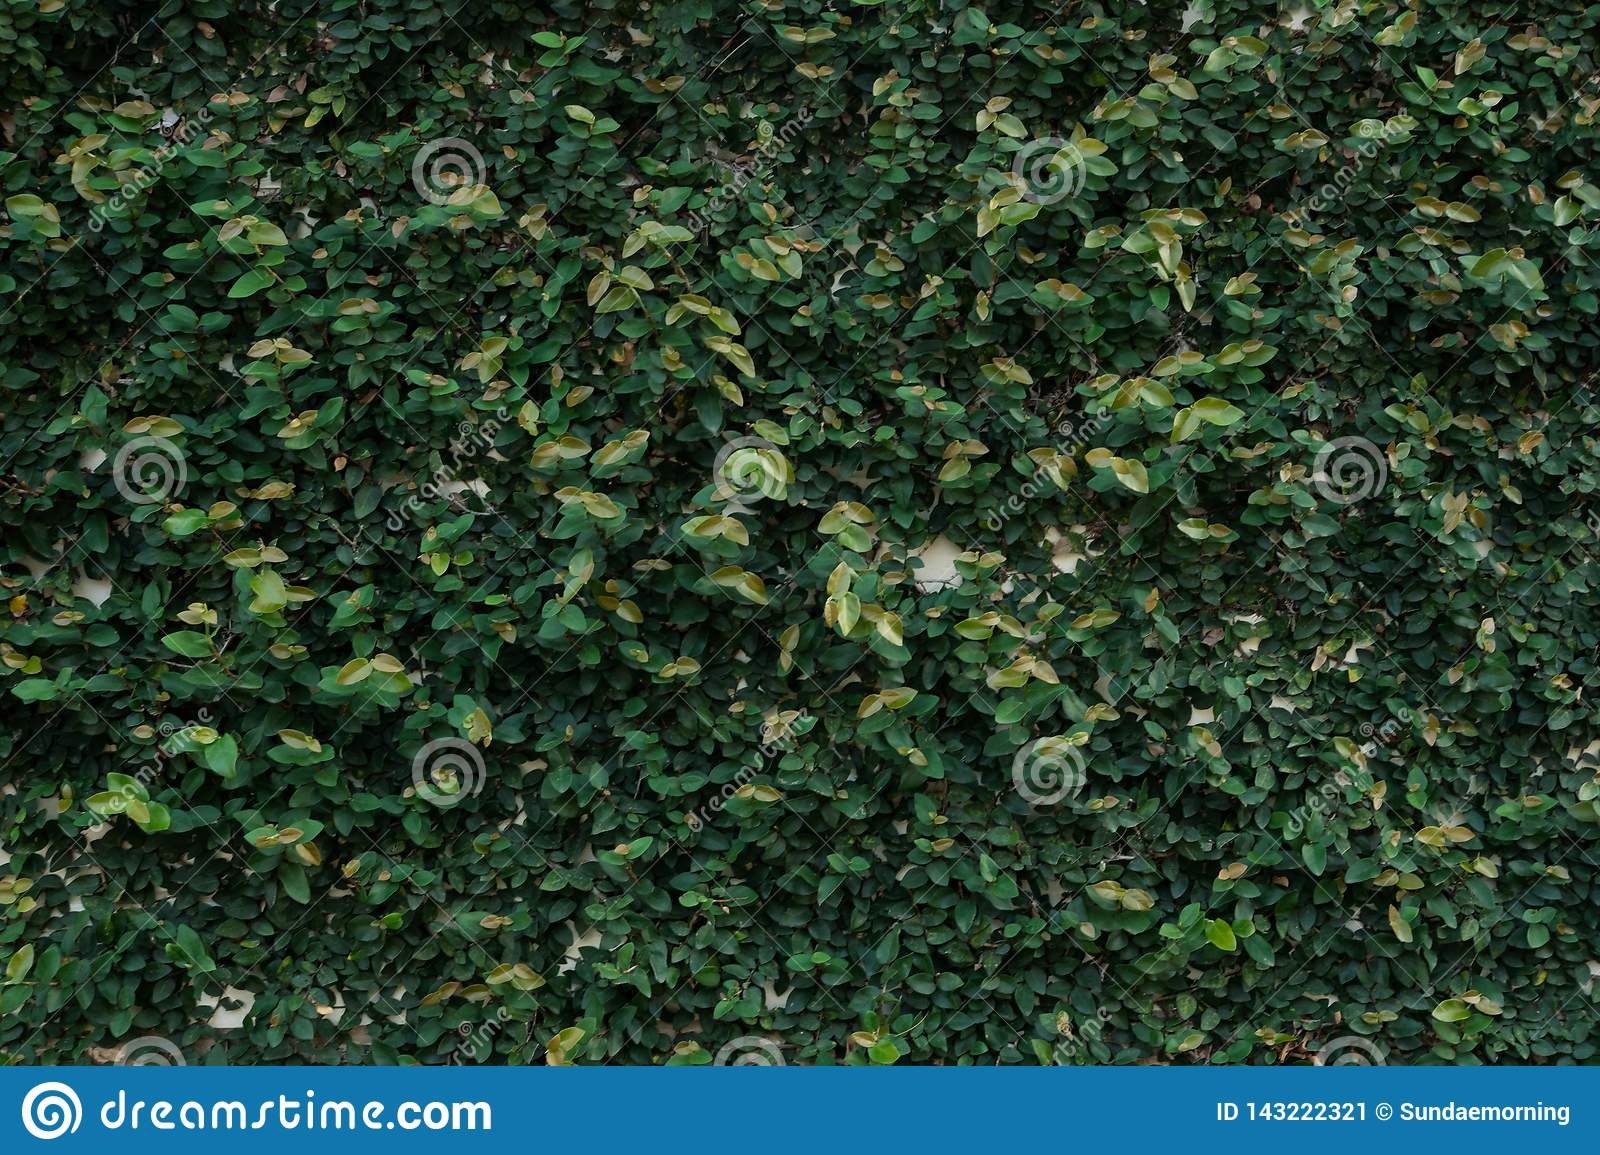 Ficus Pumila Wall Climbing Plant Texture Background